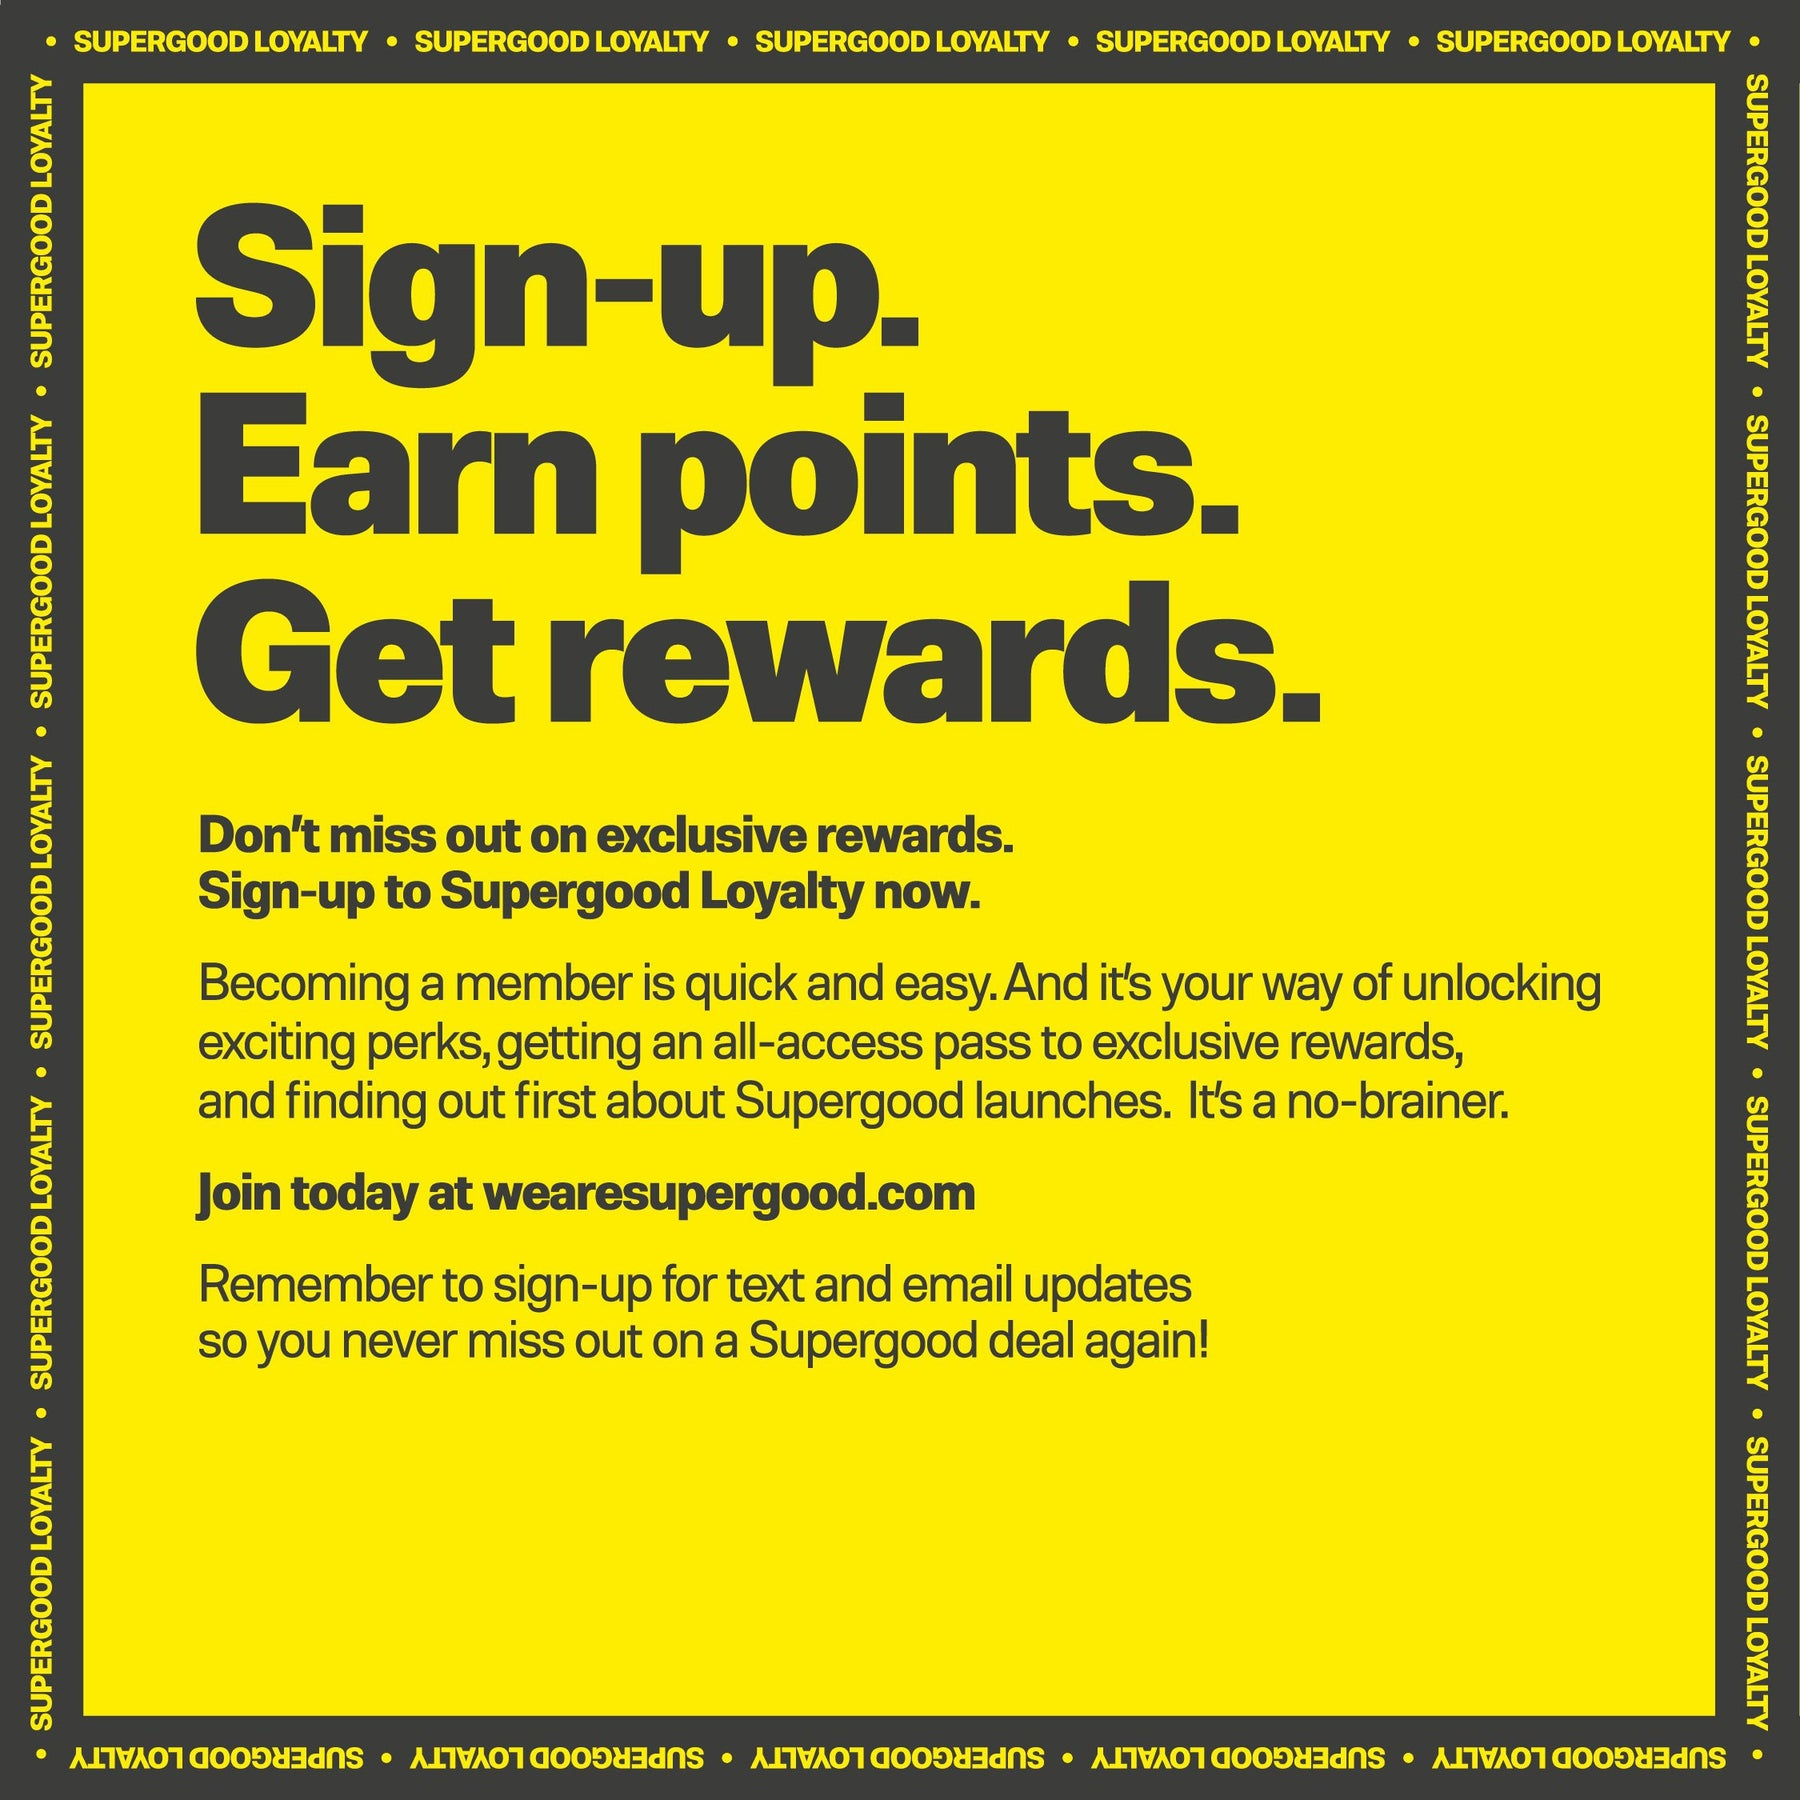 News-Sign-up. Earn points. Get rewards. | We Are Supergood.